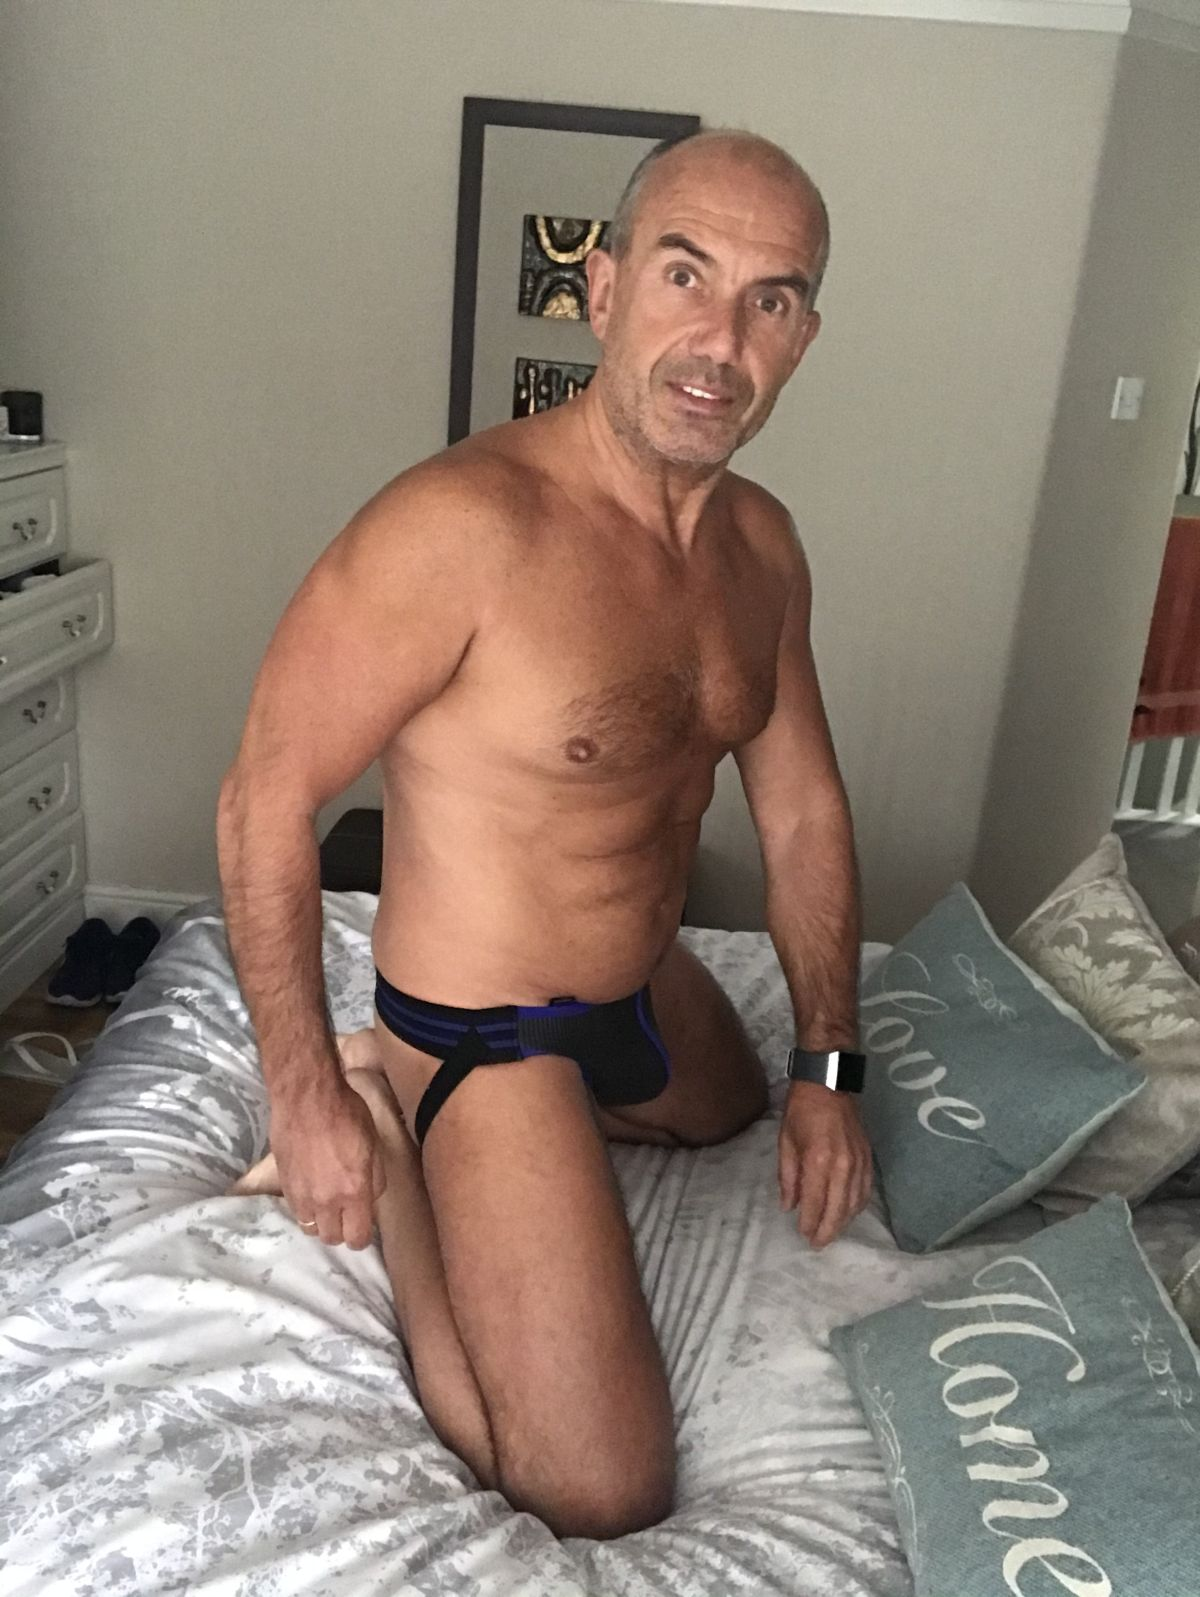 Onlyfans Mancs _ Male onlyfans leaked